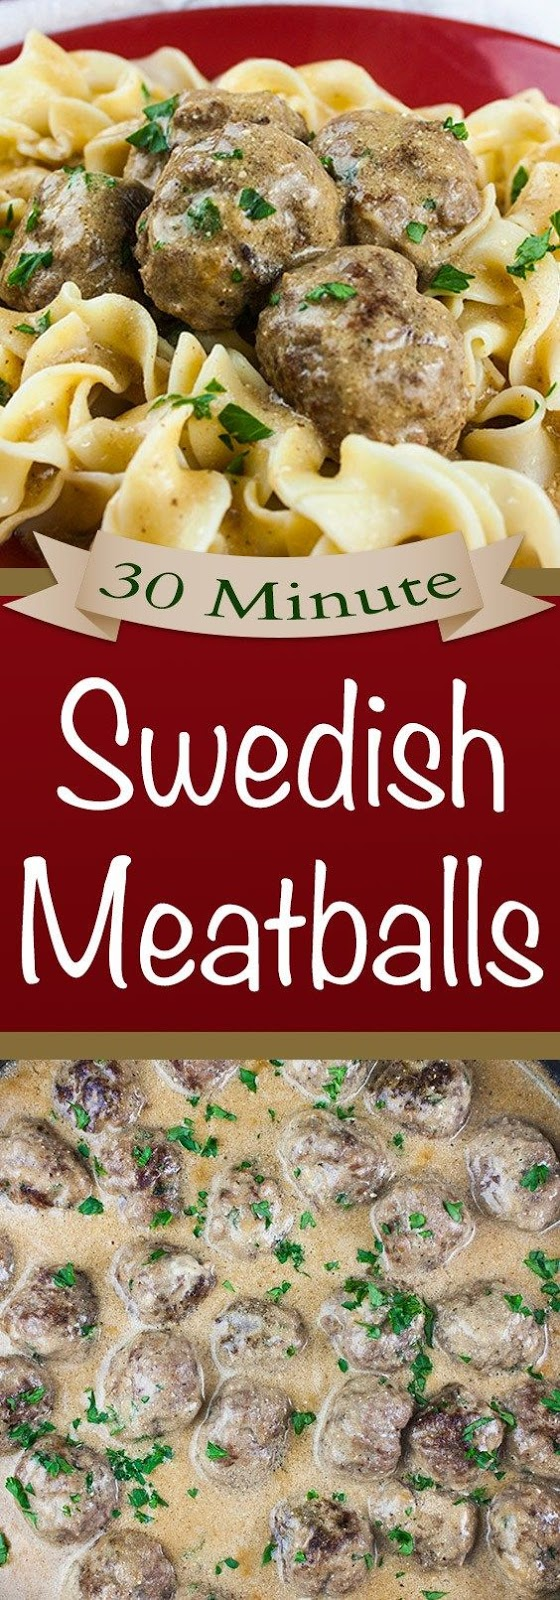 30 Minute Swedish Meatballs